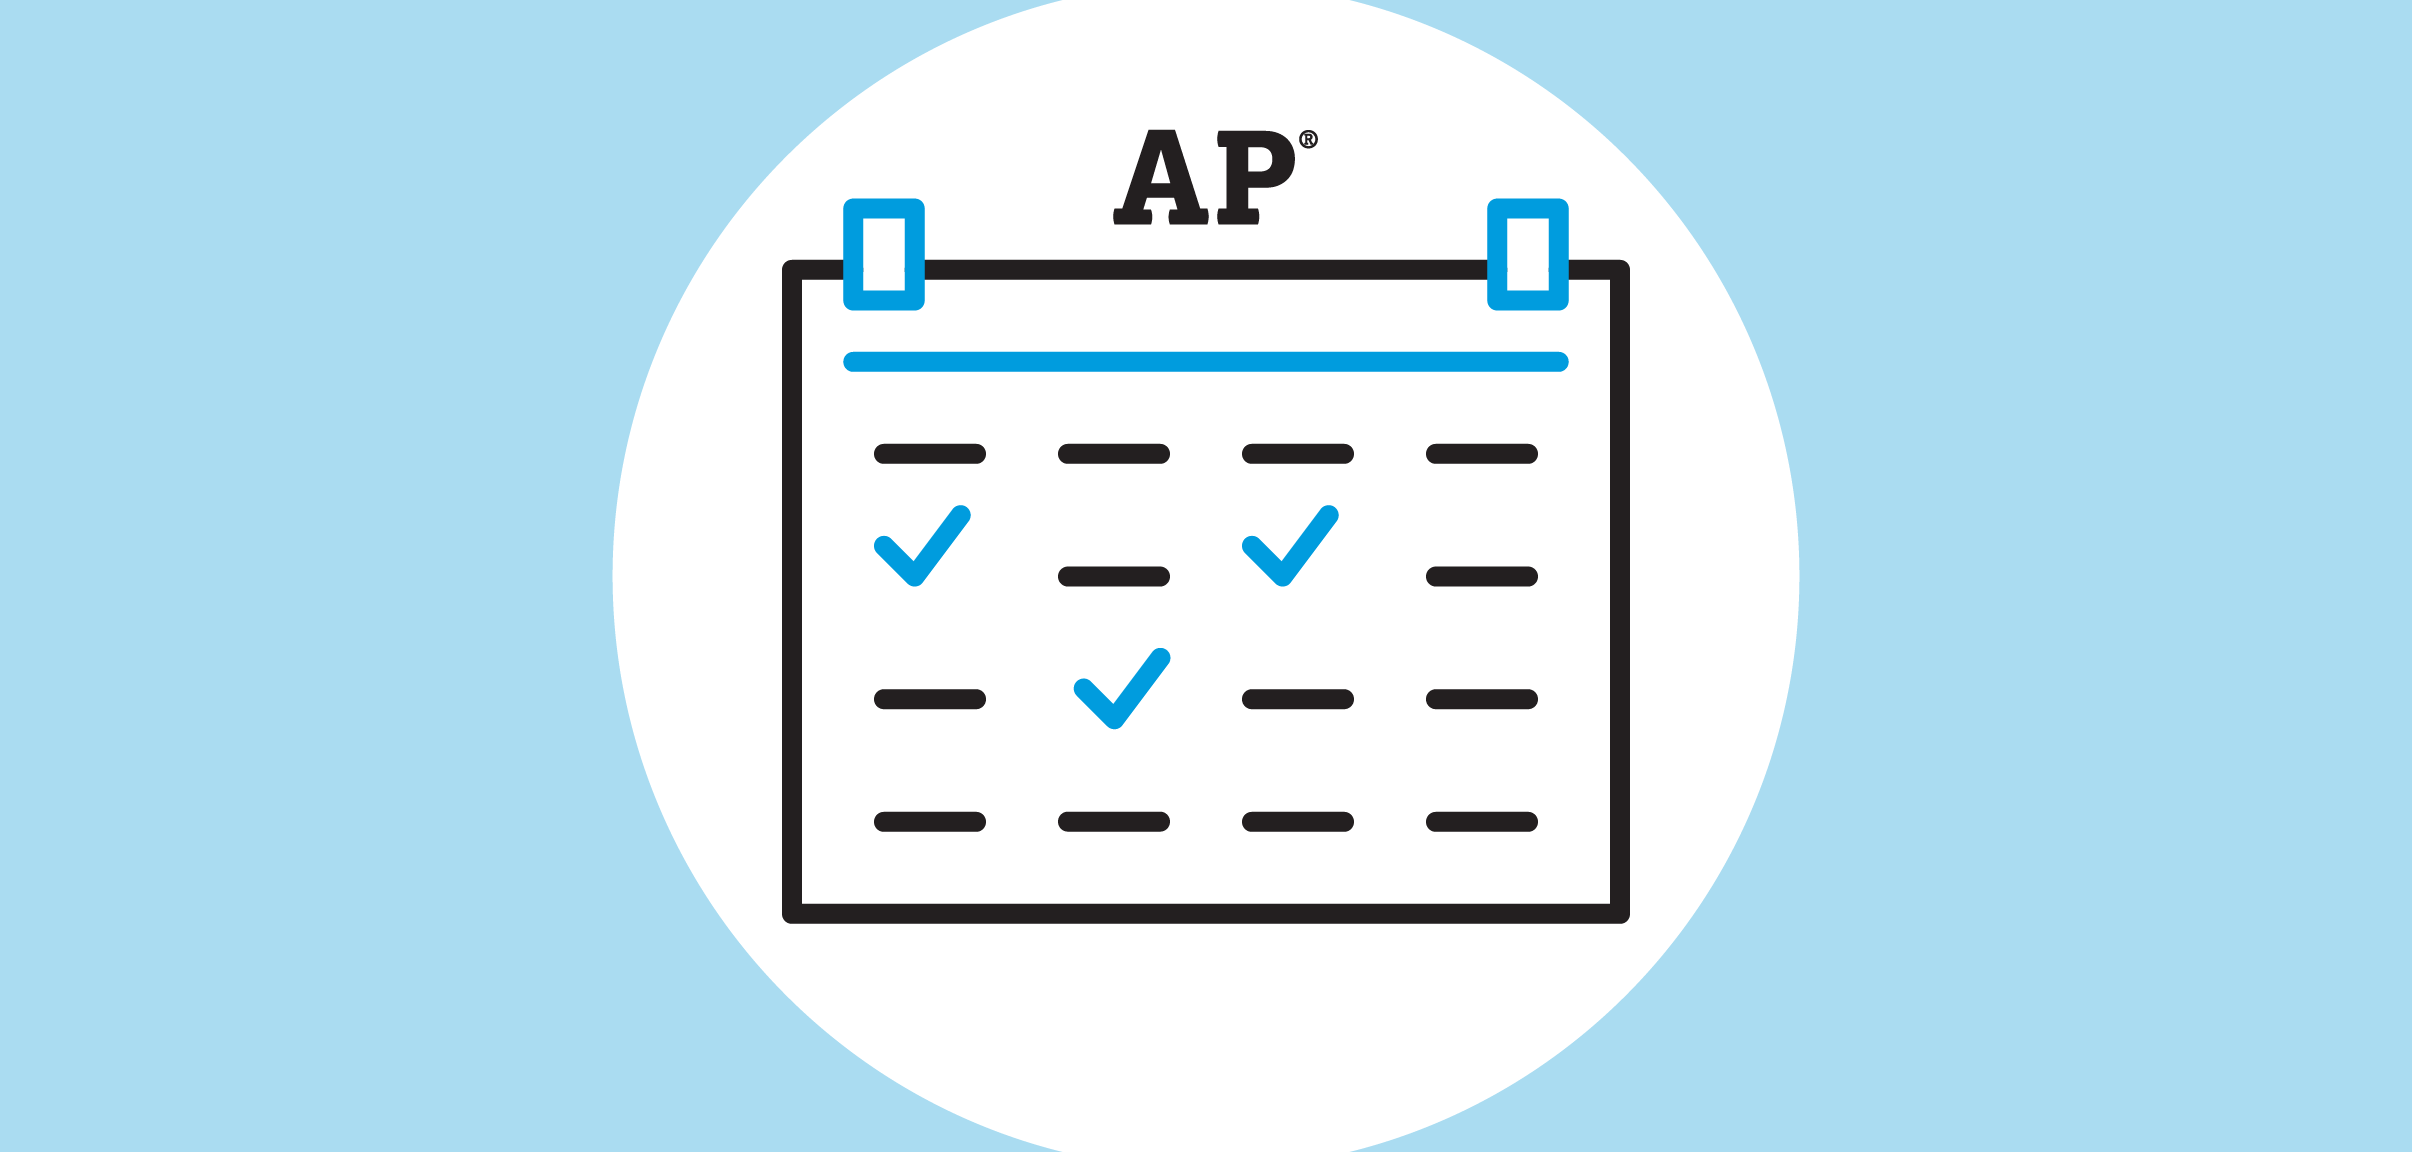 AP 2020 21 School Year Support   AP Central | College Board